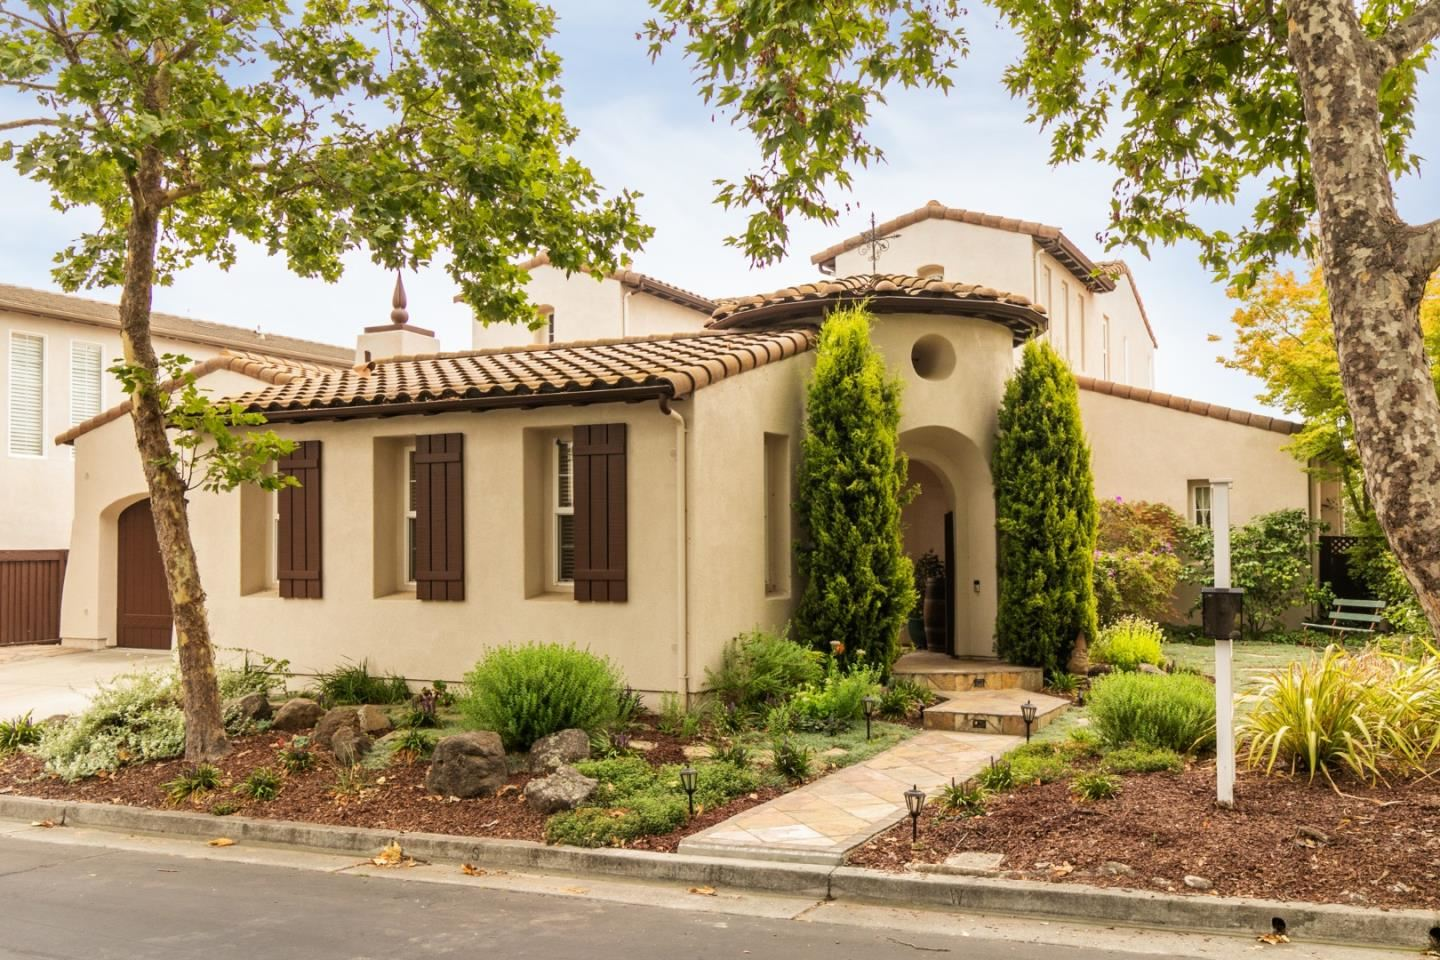 Photo for 2441 Club DR, GILROY, CA 95020 (MLS # ML81810843)